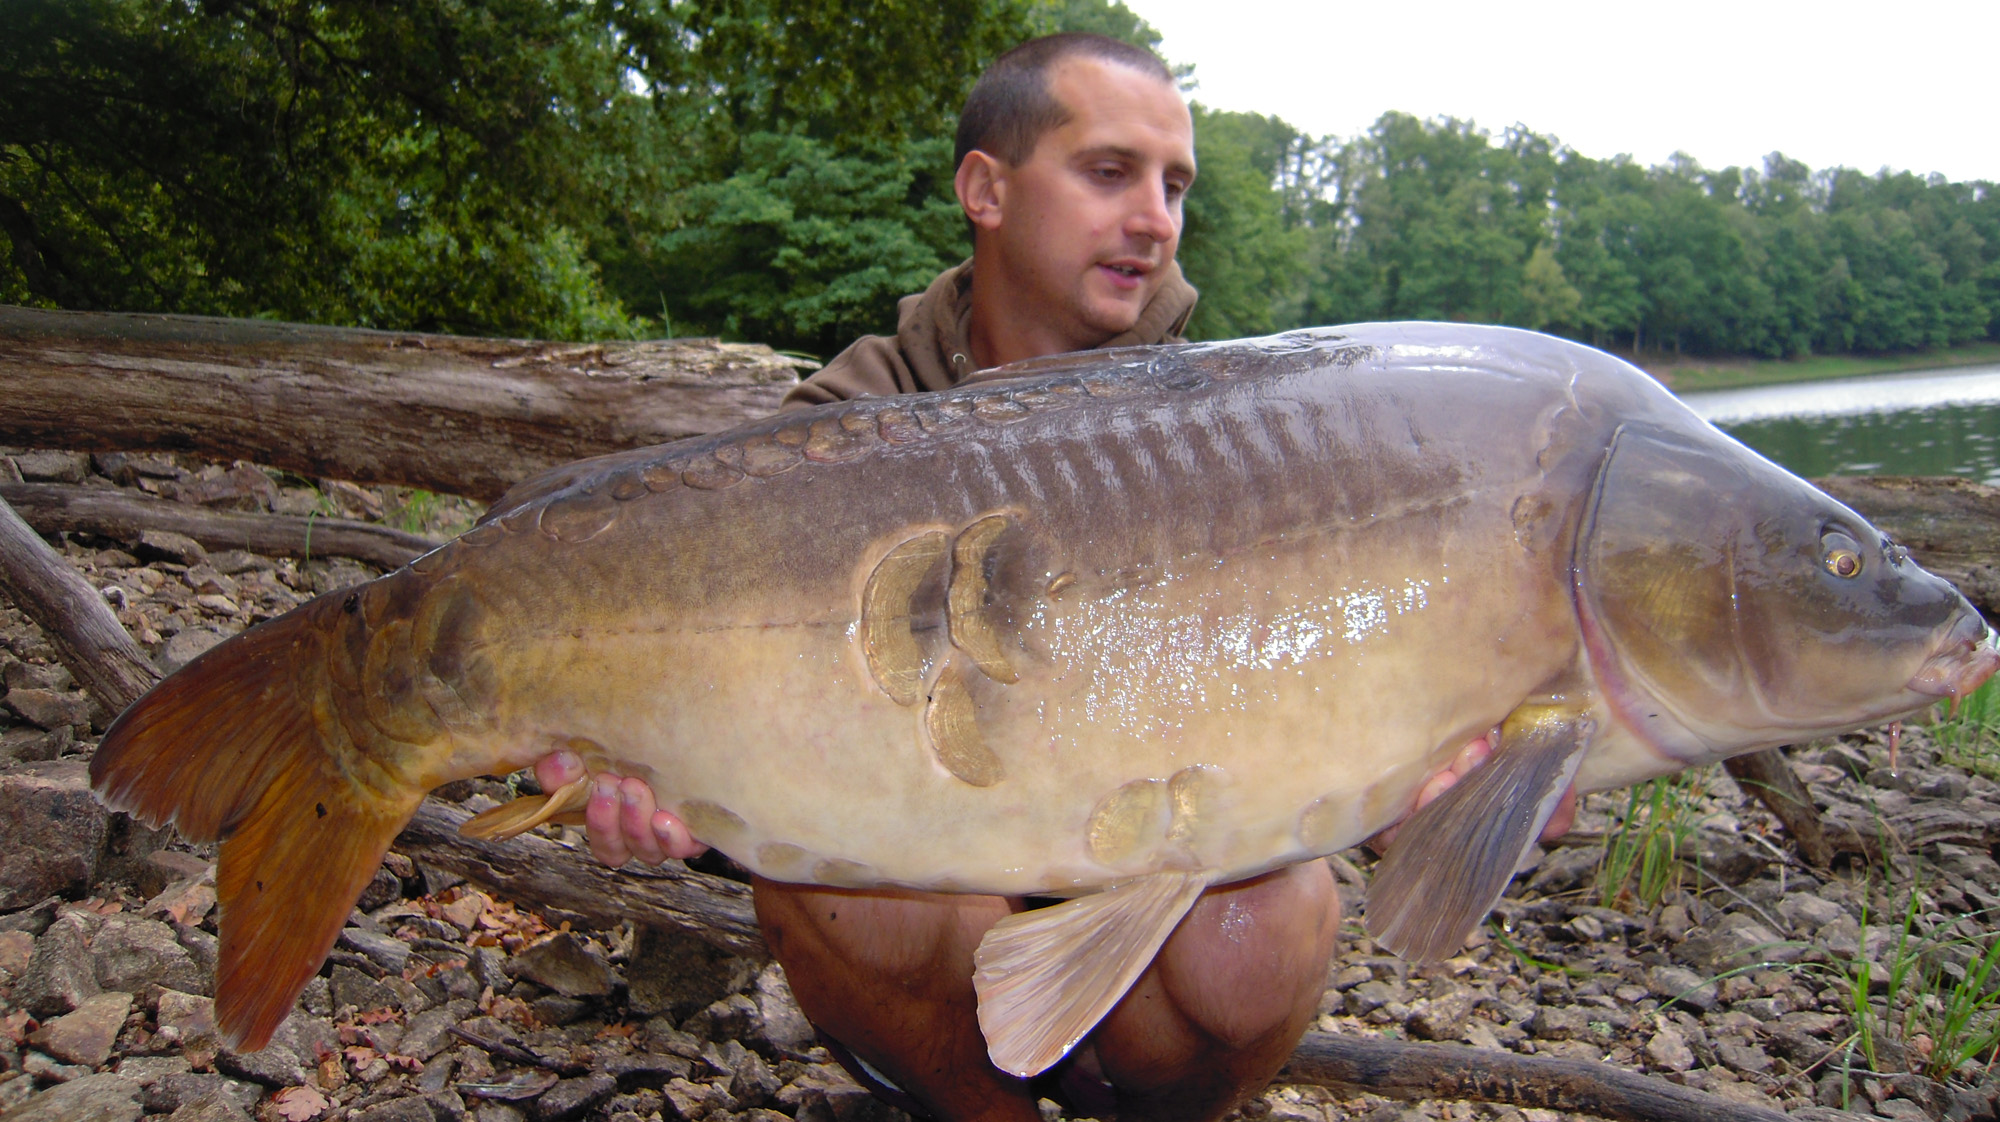 http://www.starbaits.com/fichiers/images/team/gallery/COLLET_Jerome/4 Jérôme Collet.jpg